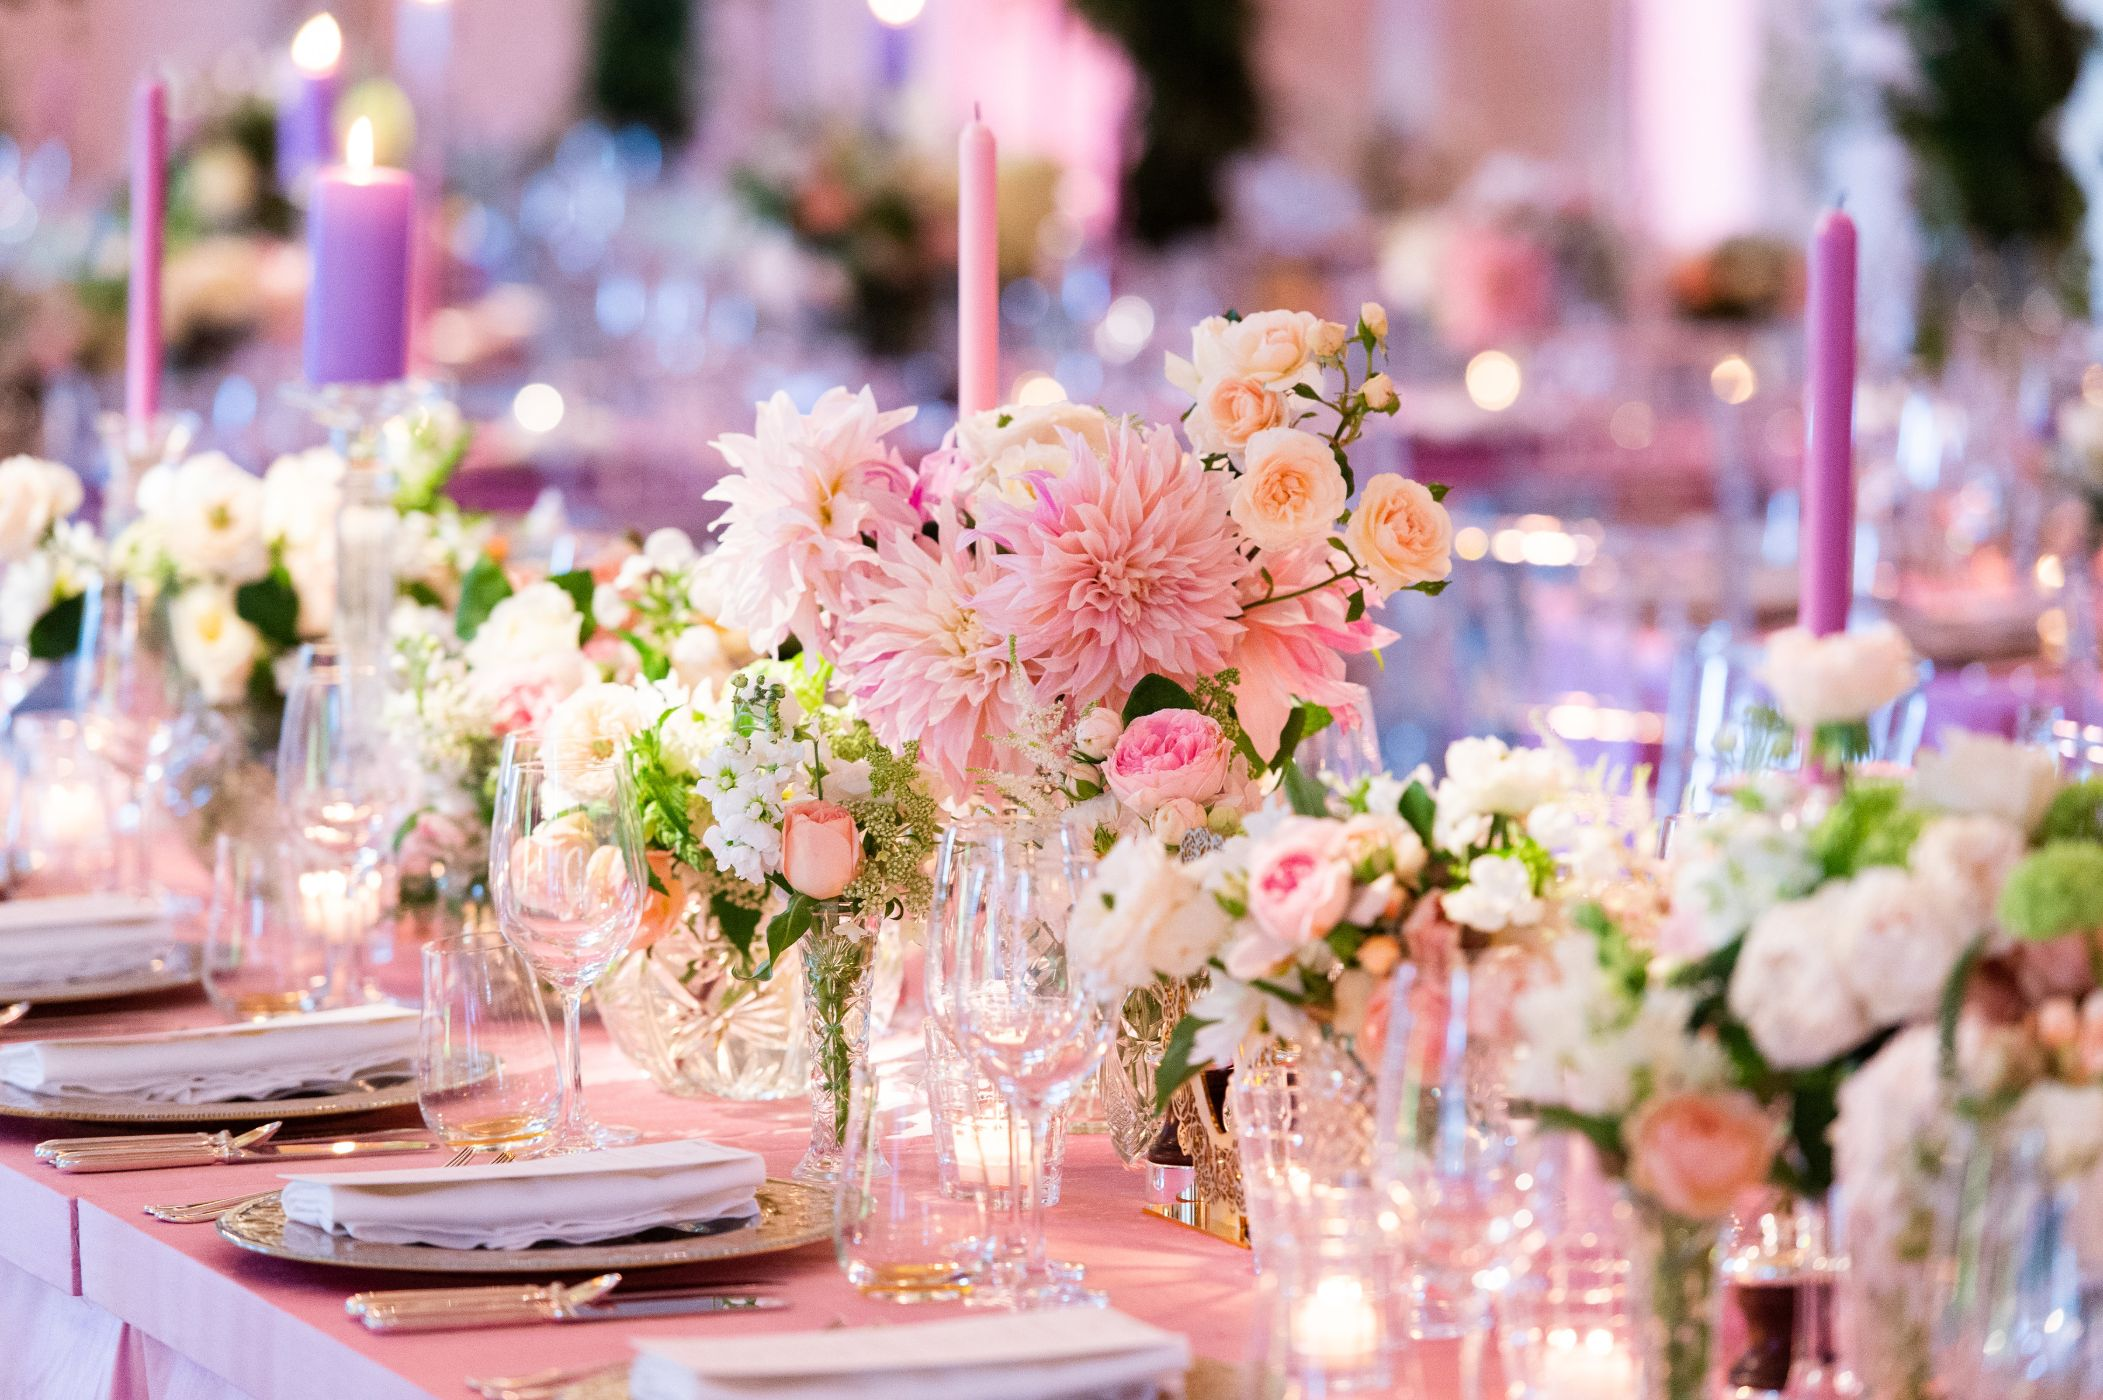 Floral table setting at wedding reception.